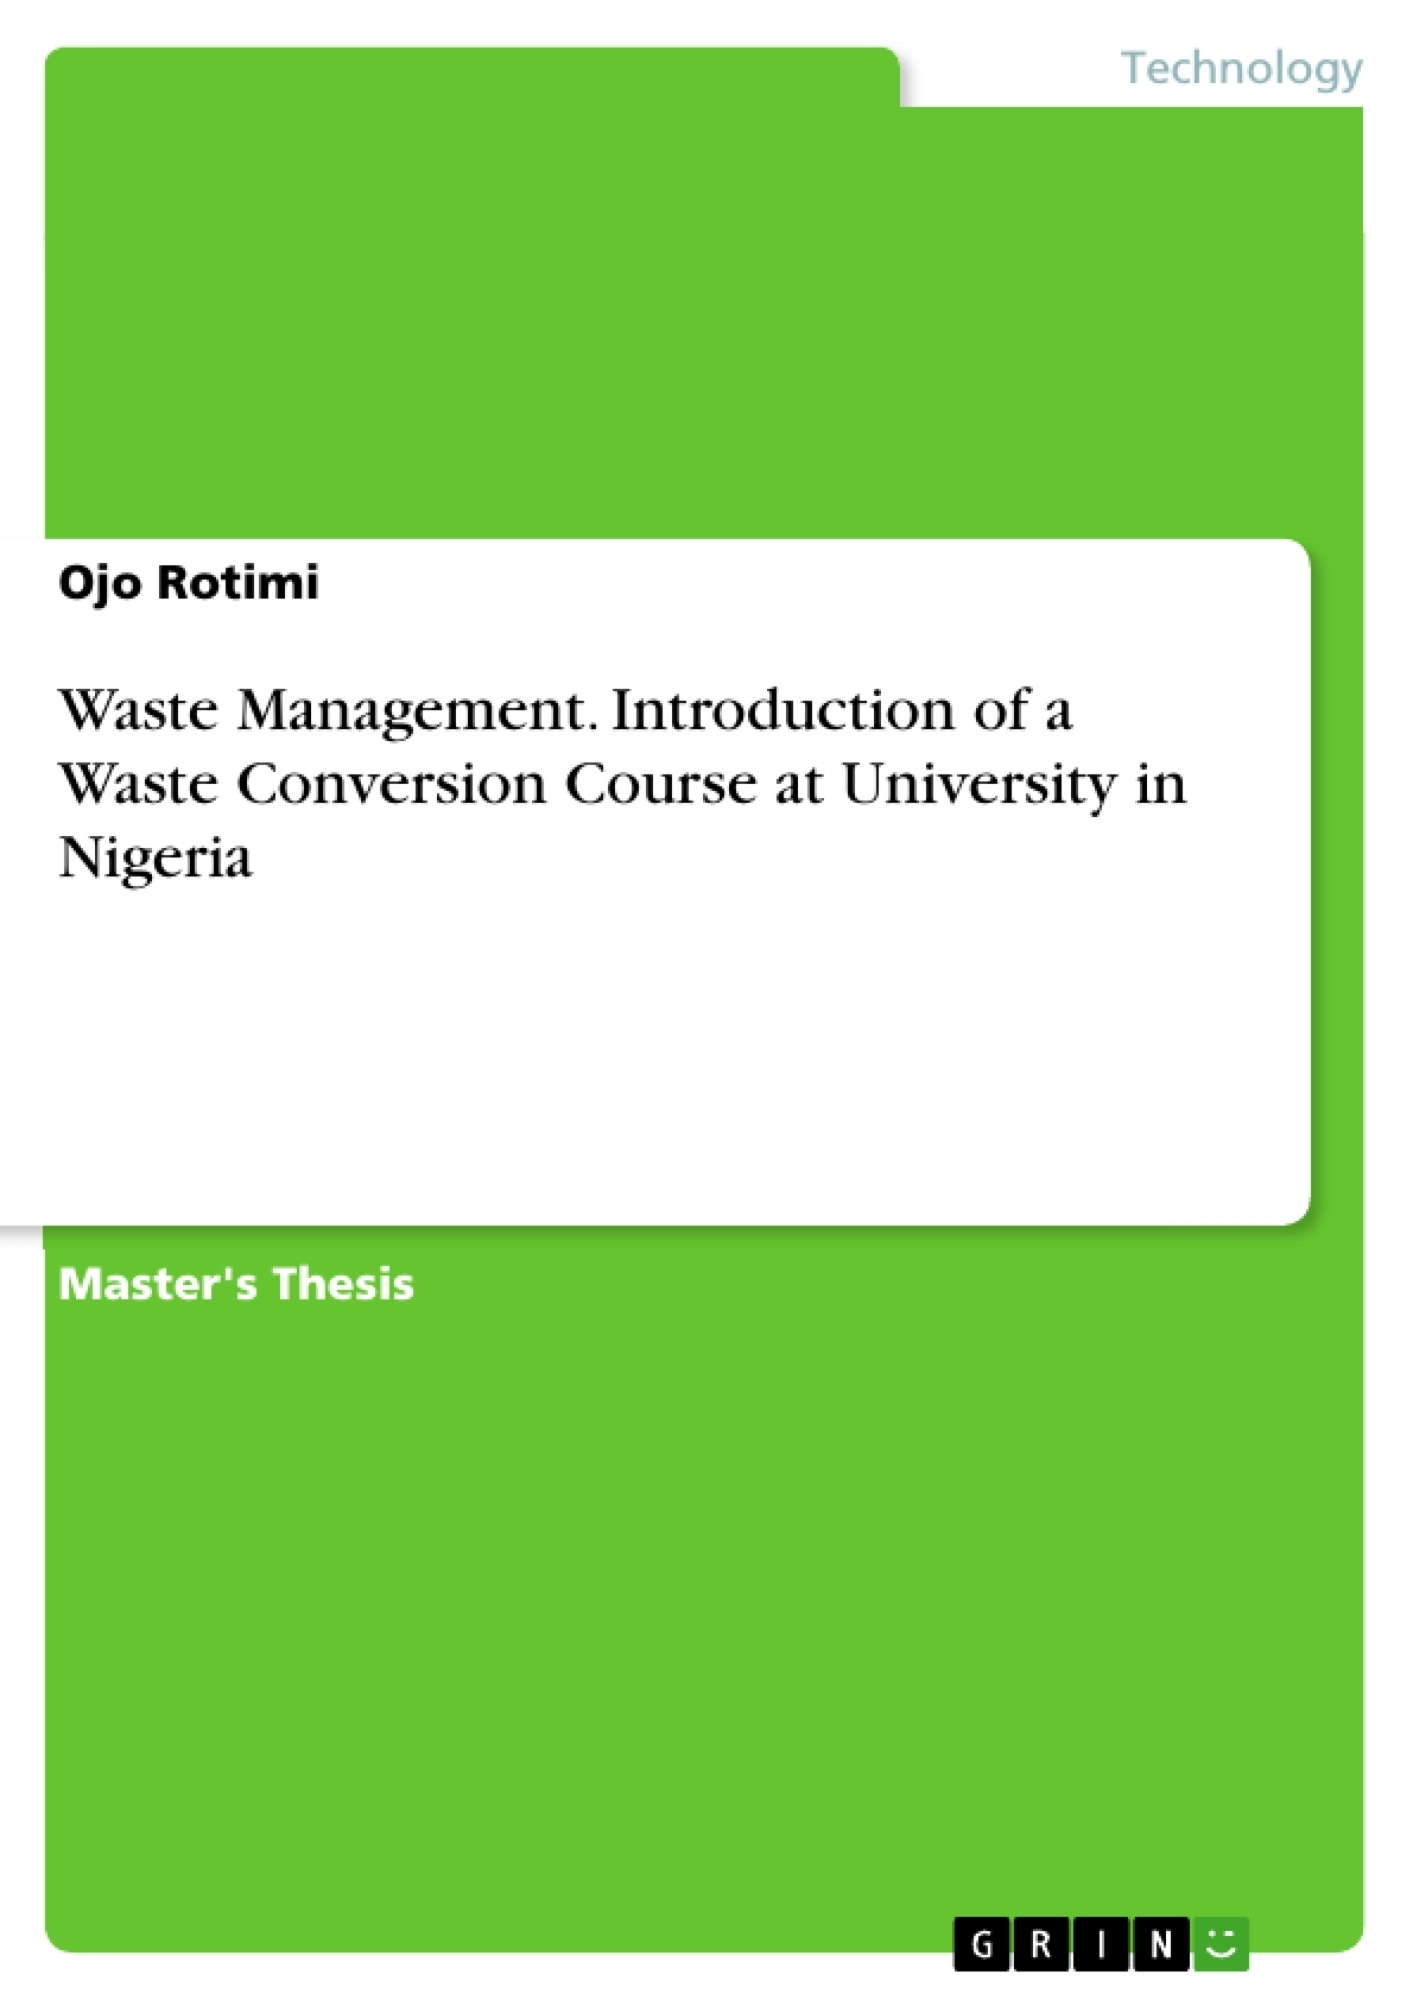 Title: Waste Management. Introduction of a Waste Conversion Course at University in Nigeria